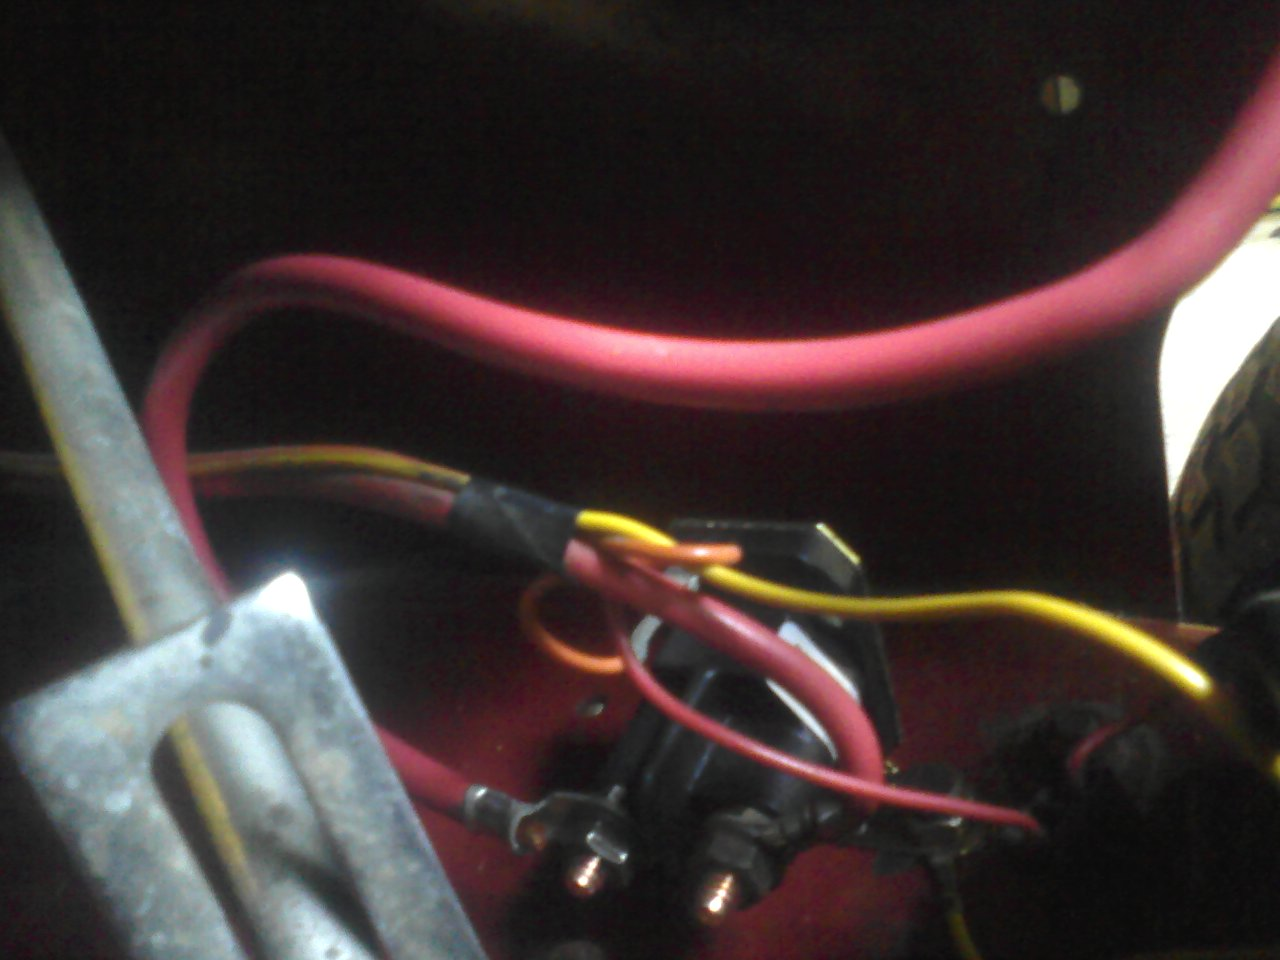 Wiring Diagram Along With Riding Lawn Mower Solenoid Wiring Diagram